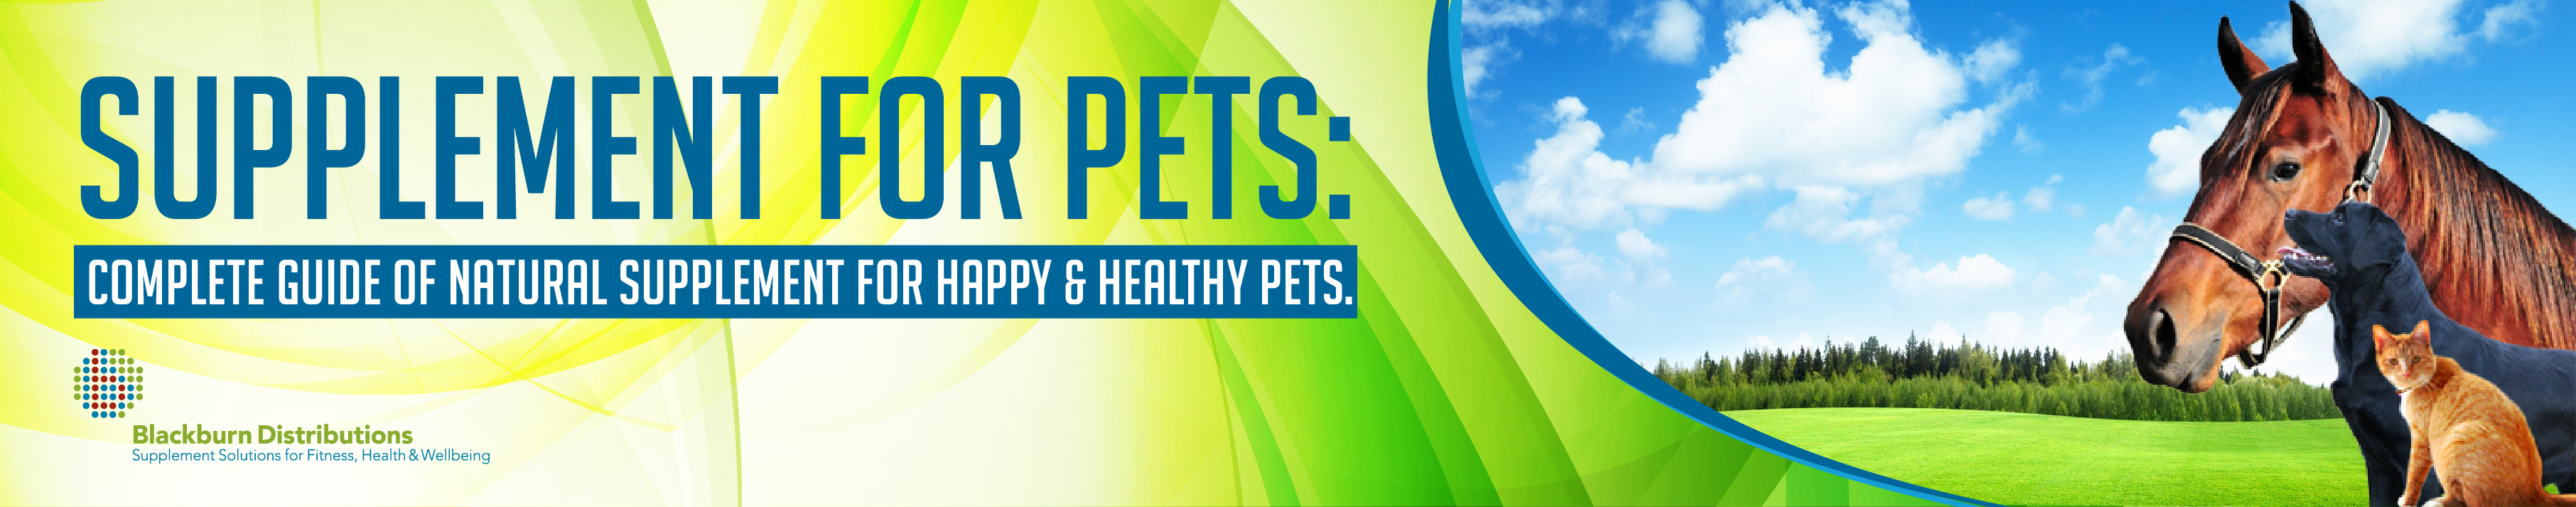 Supplement for Pets: Complete Guide of Natural Supplement For Happy & Healthy Pets